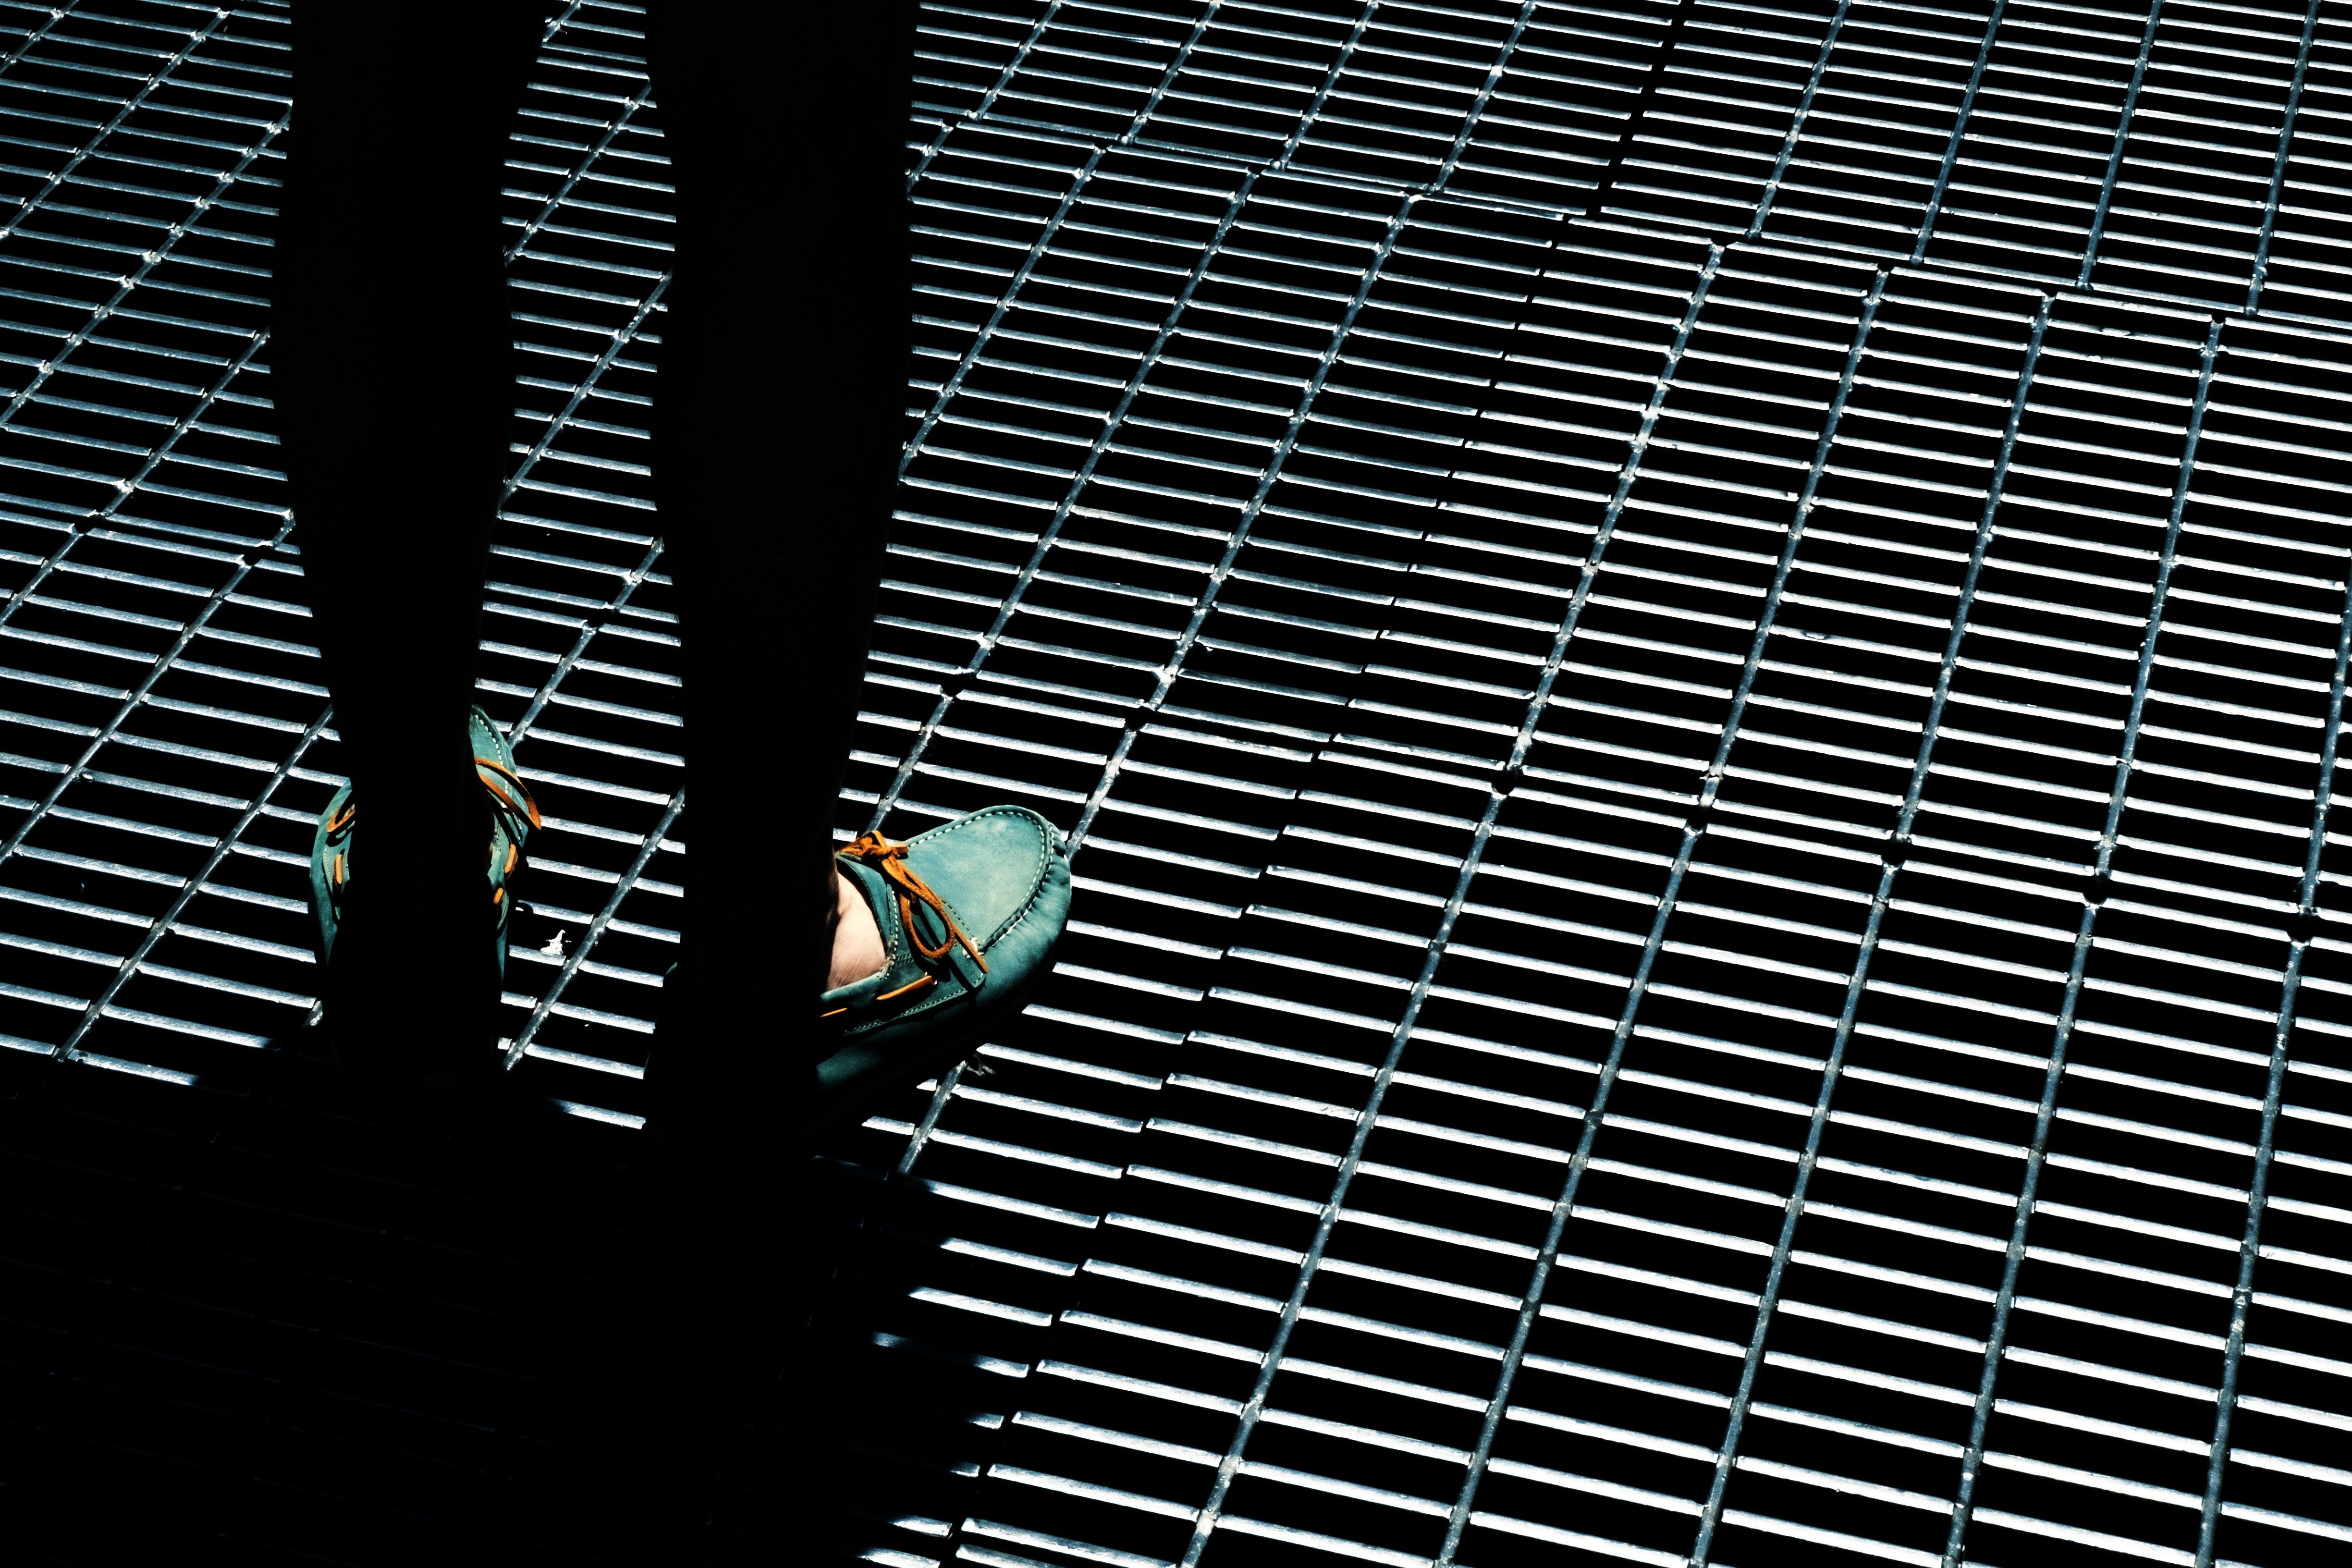 Silhouette of the legs of a person standing on the metal drain grates wearing turquoise loafers.